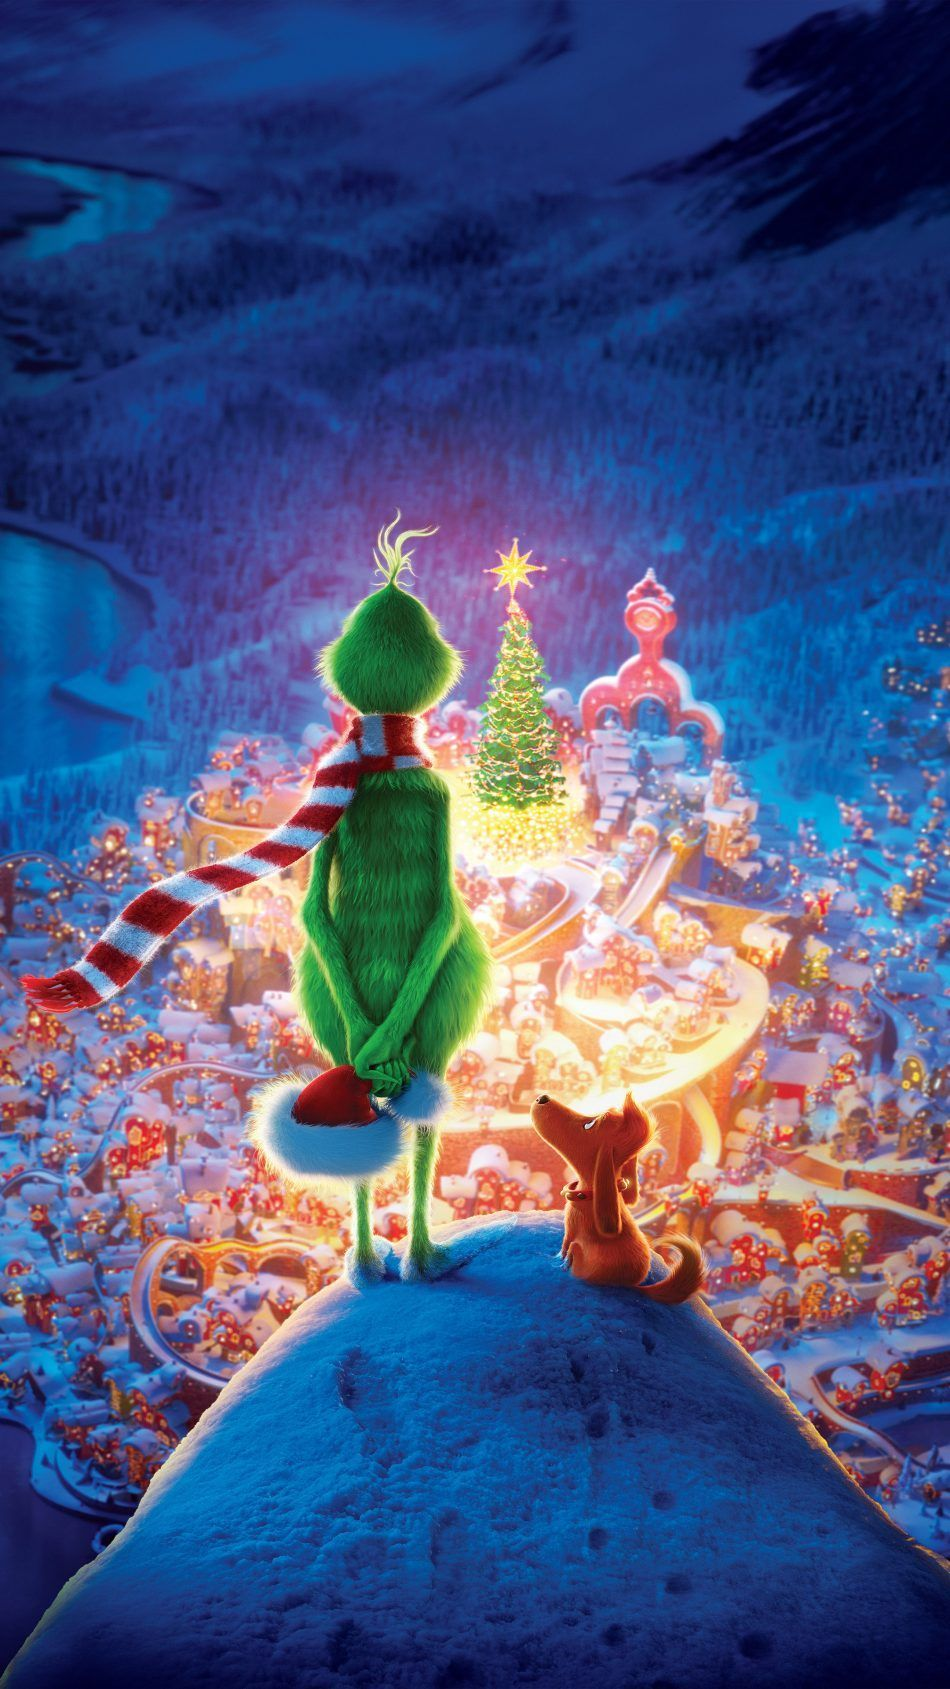 Whoville Grinch Wallpapers - Top Free